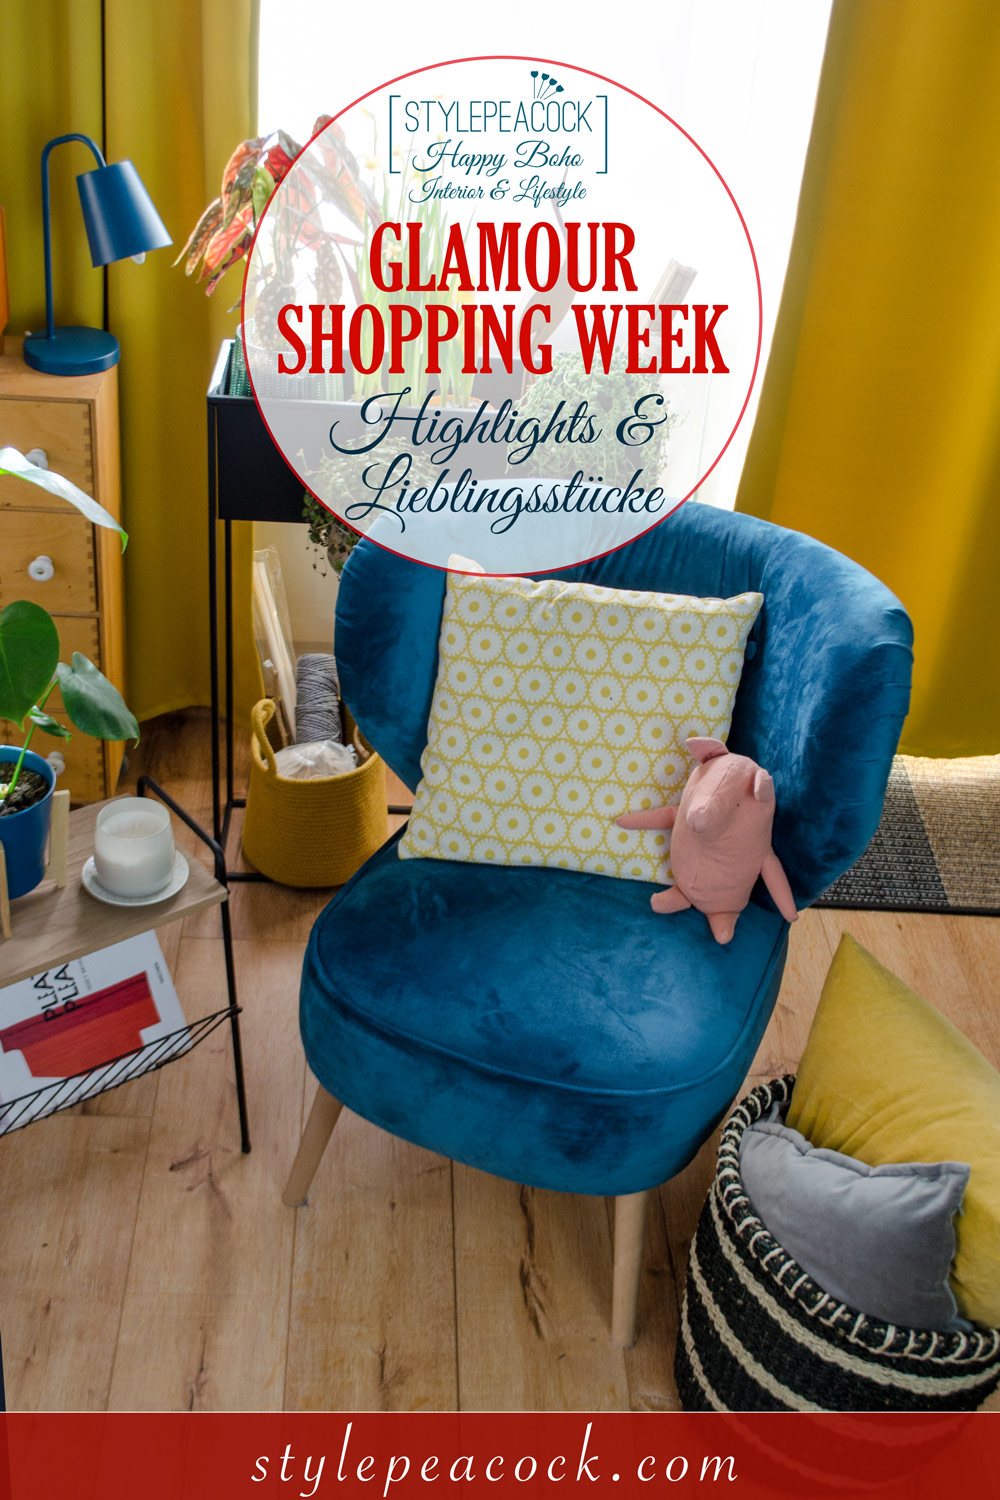 [unbeauftragte werbung]Glamour Shopping Week 2019 | Interior & Lifestyle Highlights